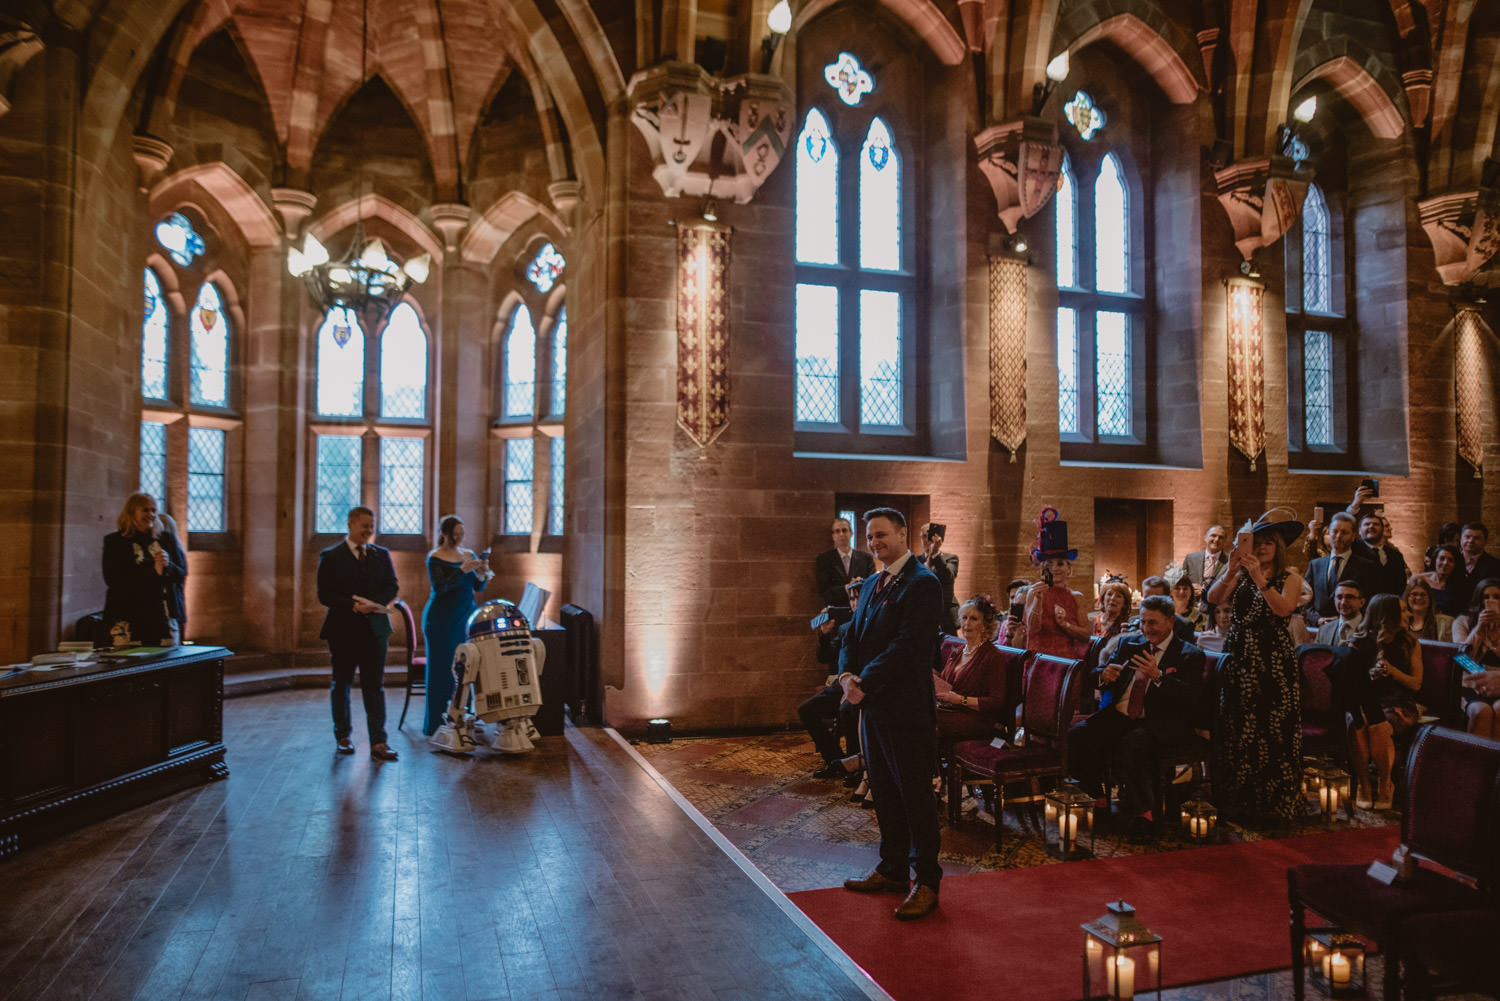 Groom moments before the wedding ceremony at Peckforton Castle